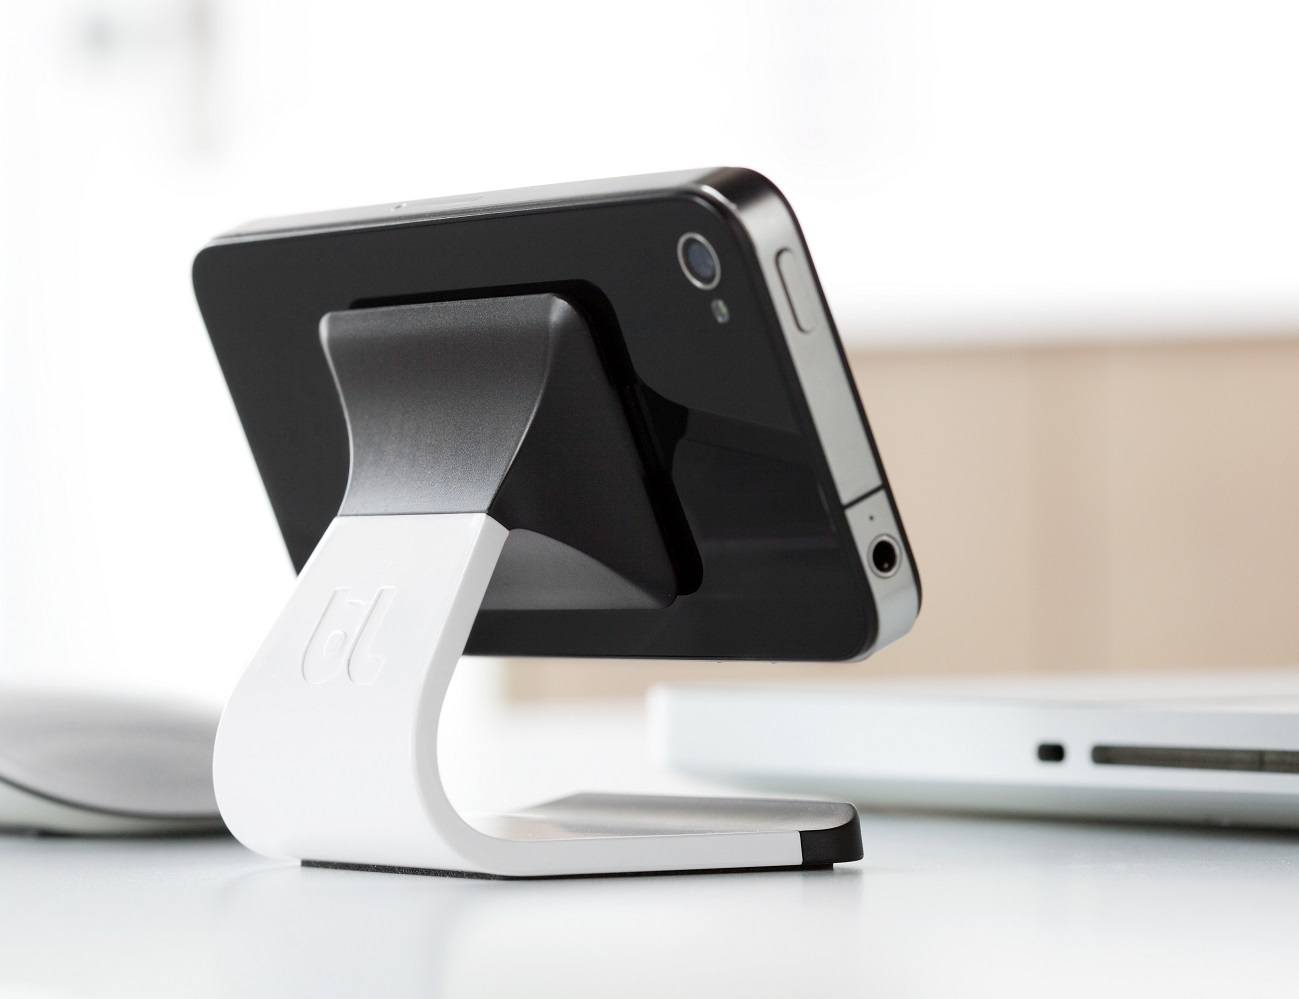 Milo Stand – For Most Smartphones by BlueLounge